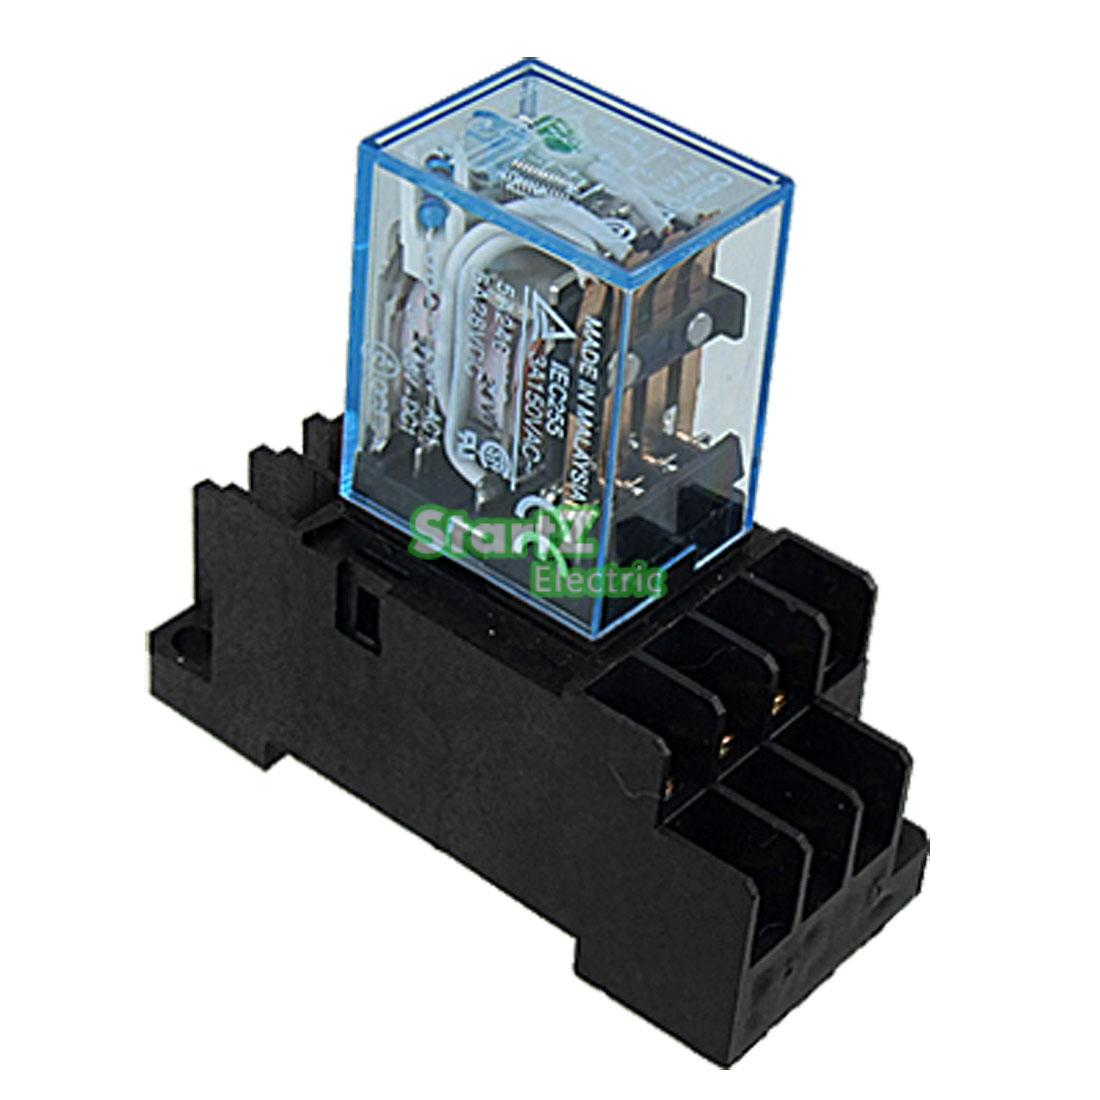 Square D Mag ic Motor Starter 1h506 additionally Uses Refrigeration Low Pressure Controls also 179846 also Multi Technologies Simulation Software also Starter Of An Induction Motor. on siemens relay wiring diagram